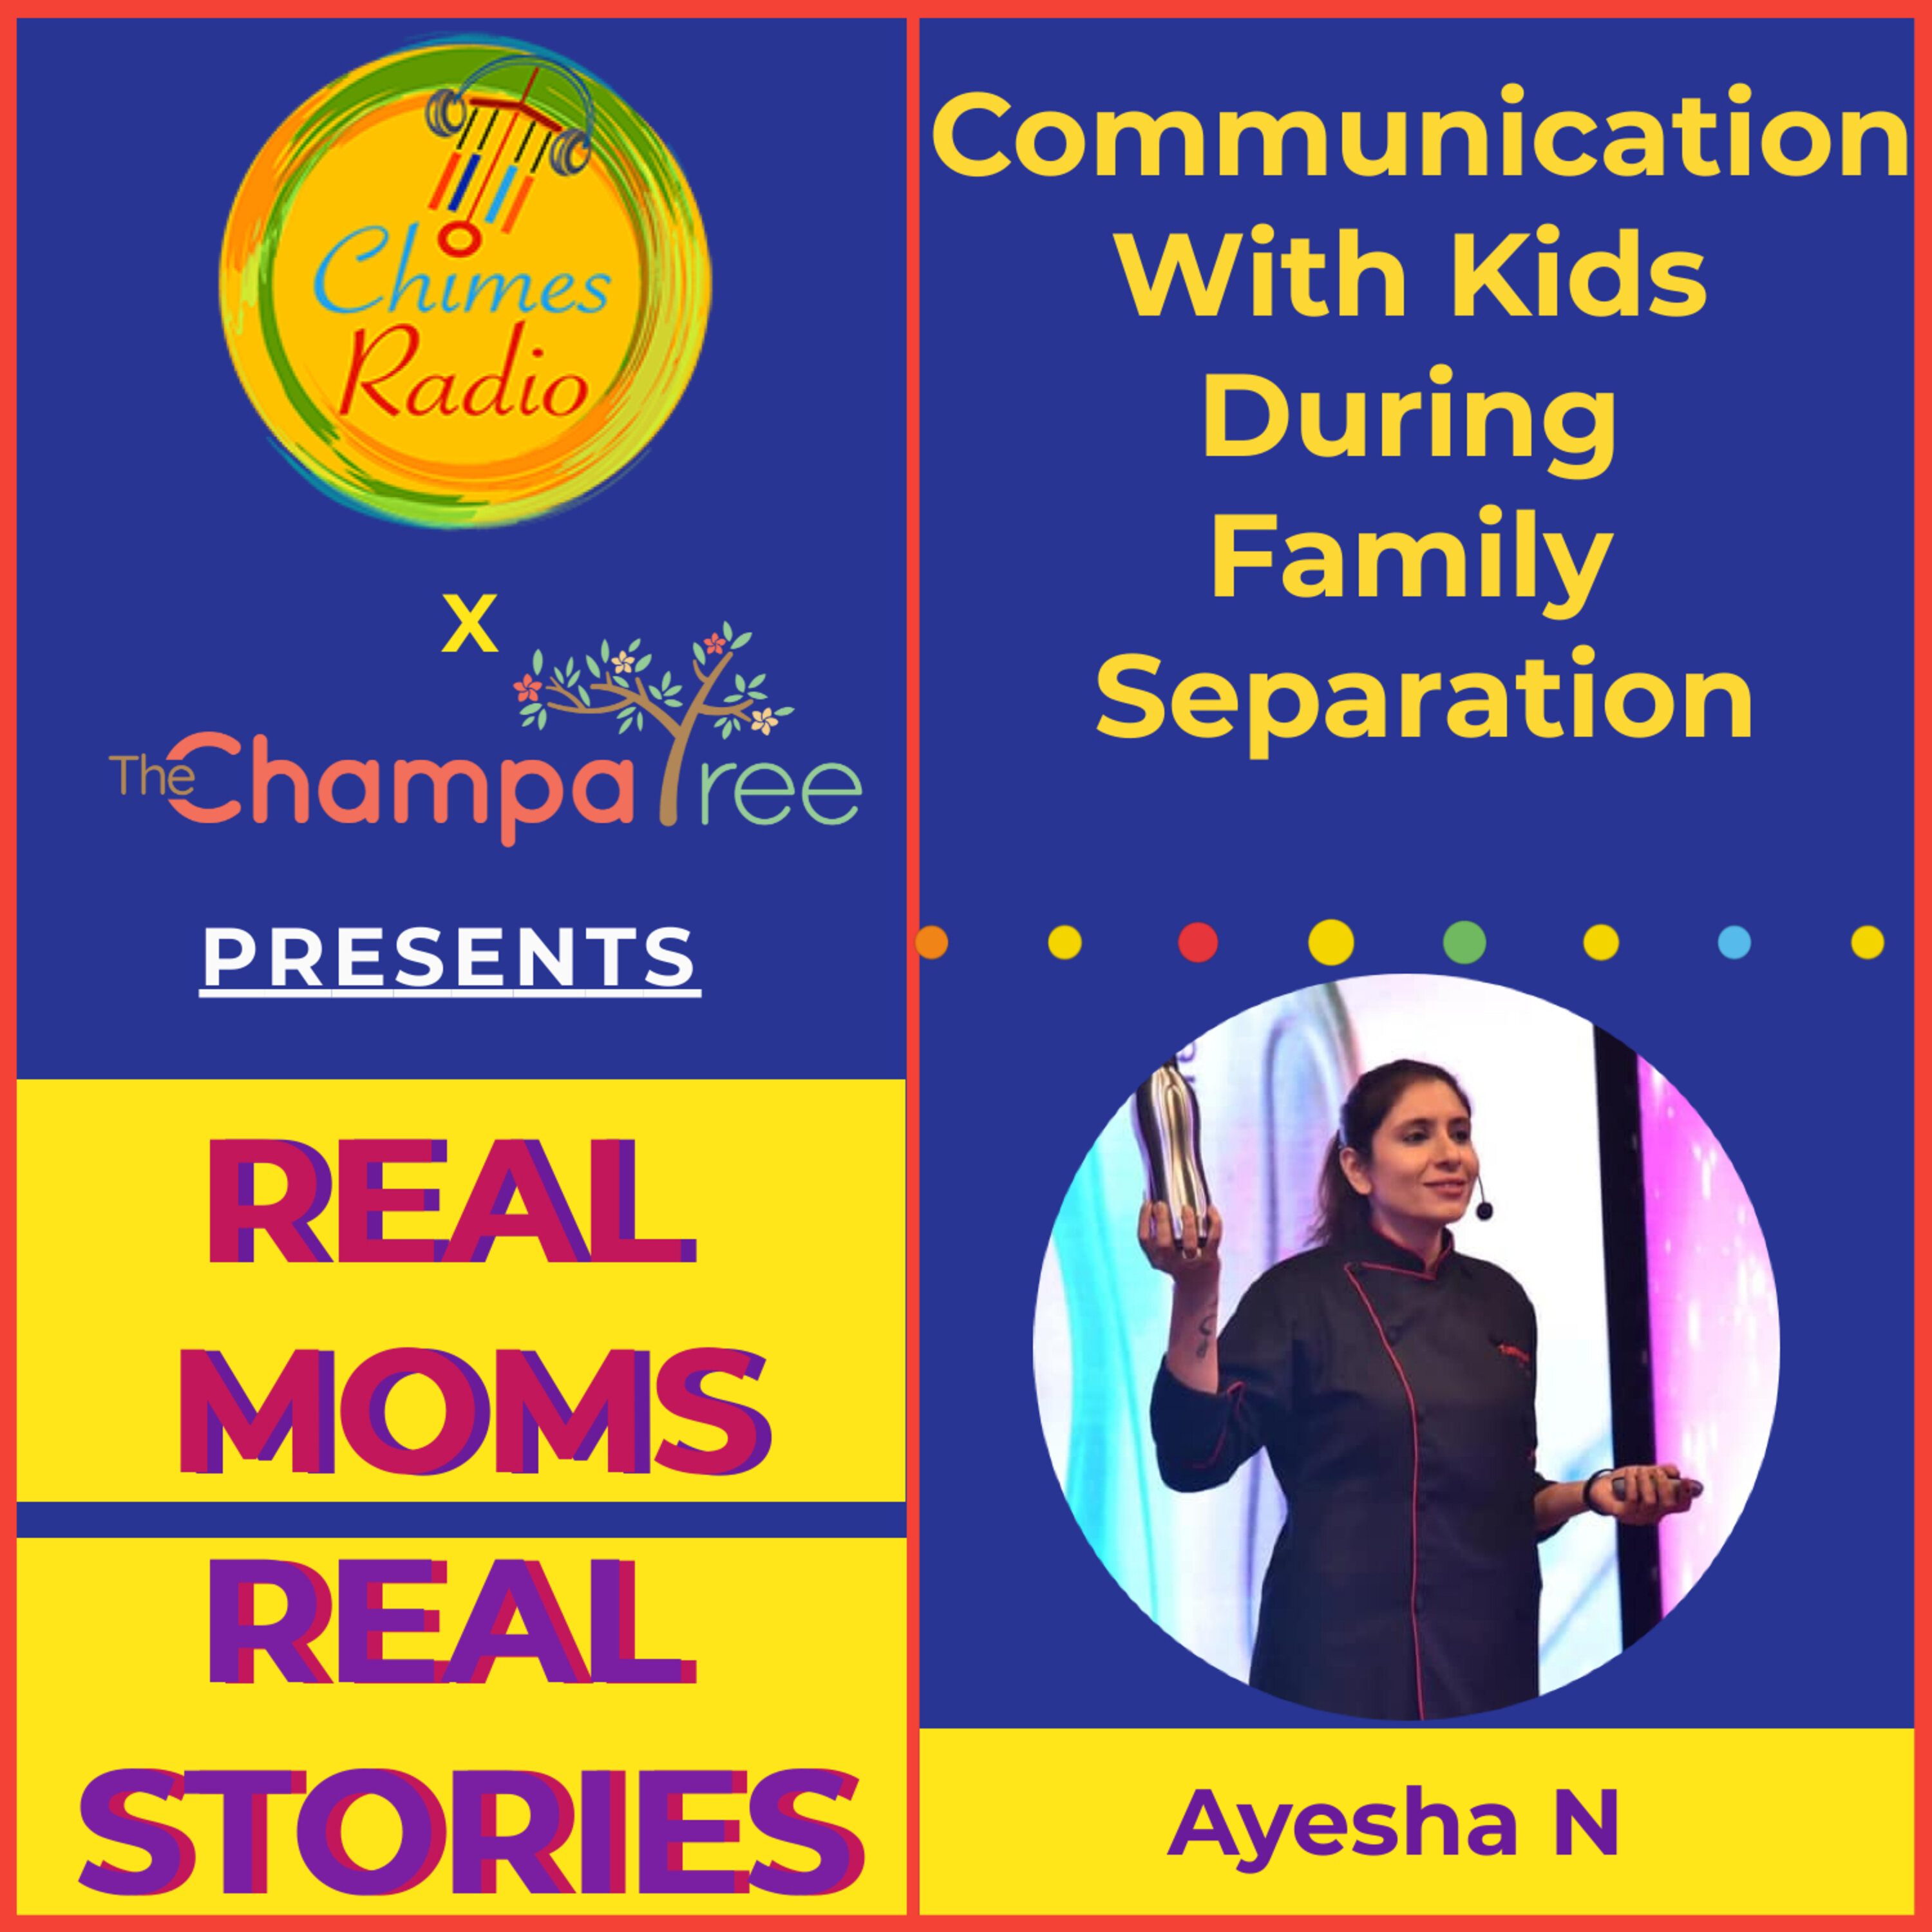 Communication With Kids During Family Separation - Ayesha N​